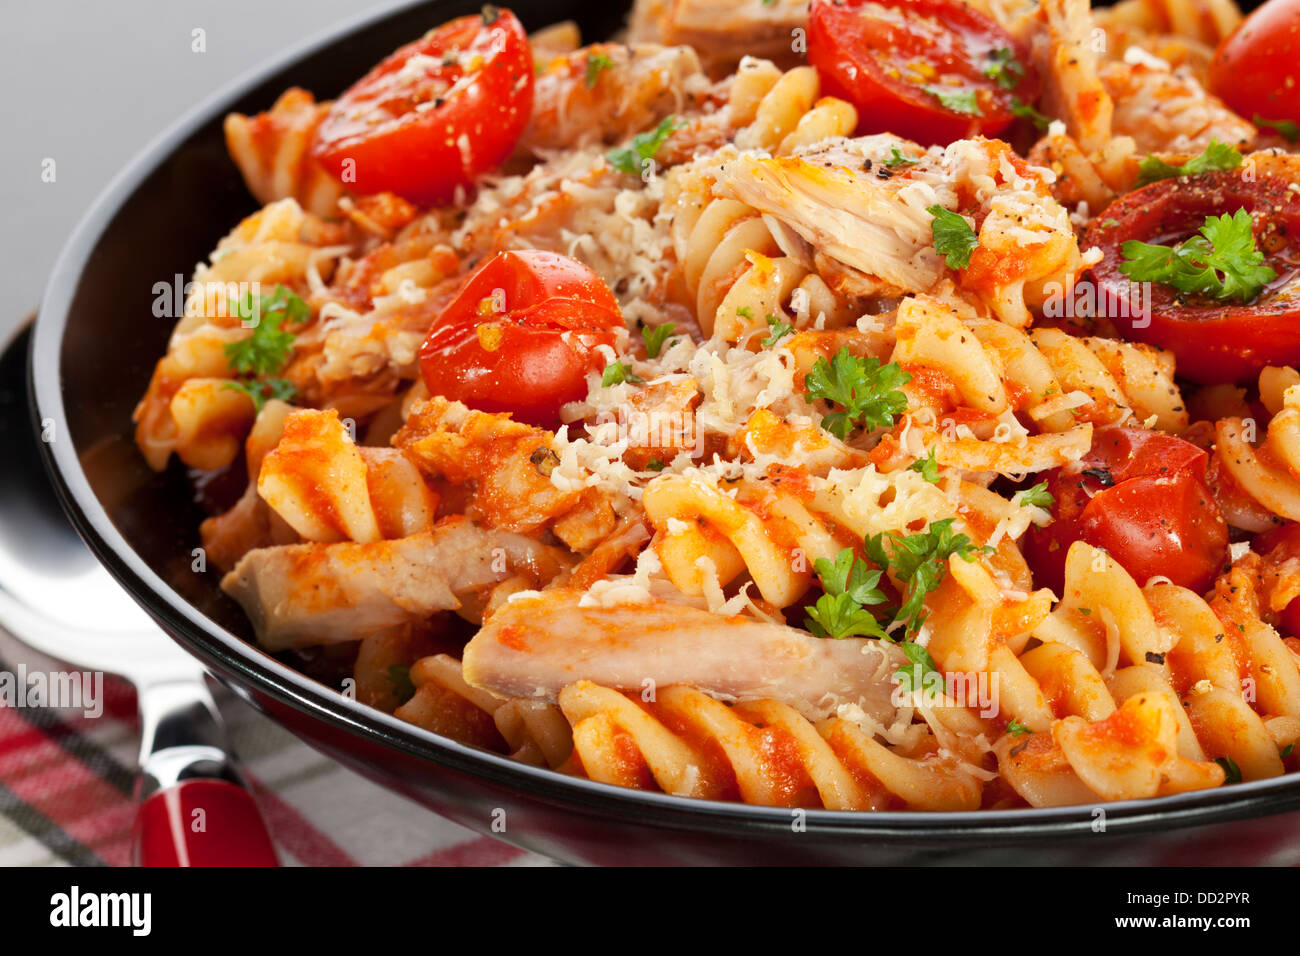 Pasta Bake with Tuna and Cherry Tomatoes - an individual serving of pasta bake with cherry tomatoes and tuna, in - Stock Image